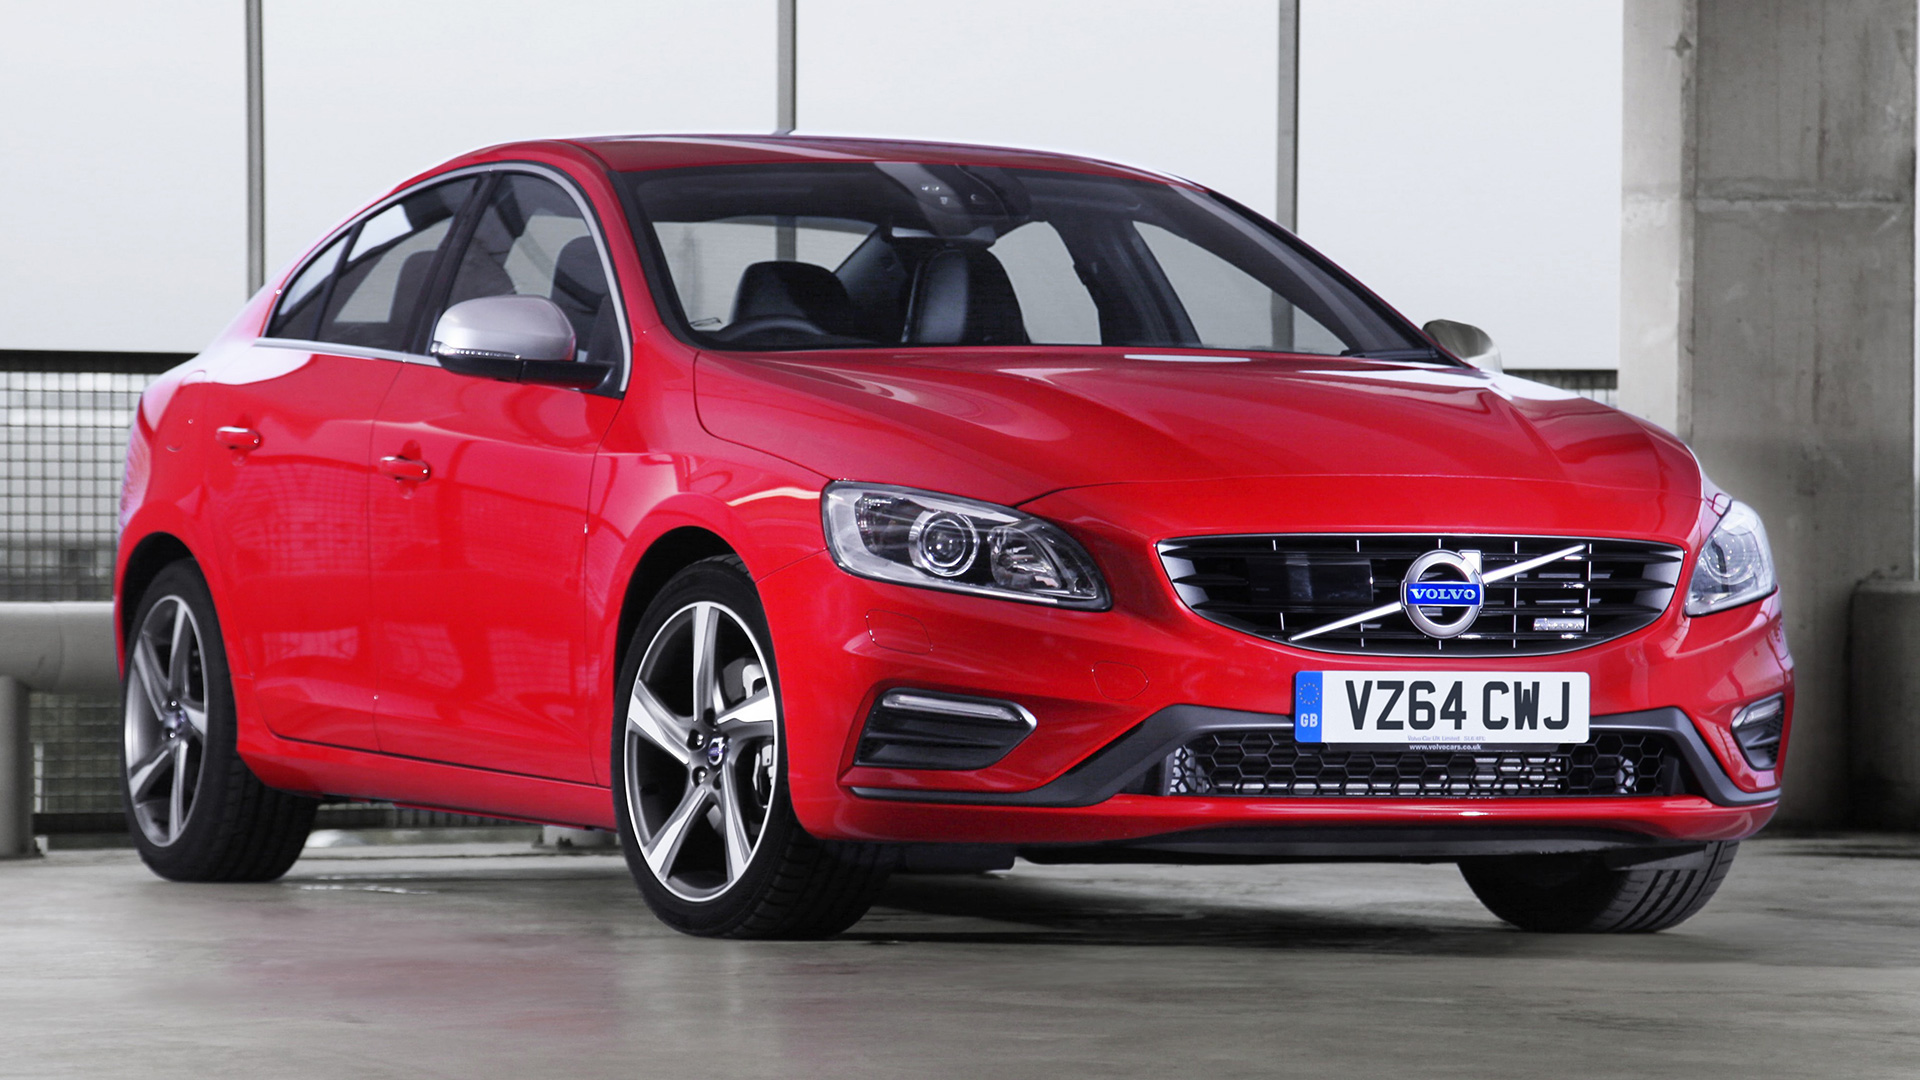 used volvo s60 cars for sale on auto trader uk. Black Bedroom Furniture Sets. Home Design Ideas